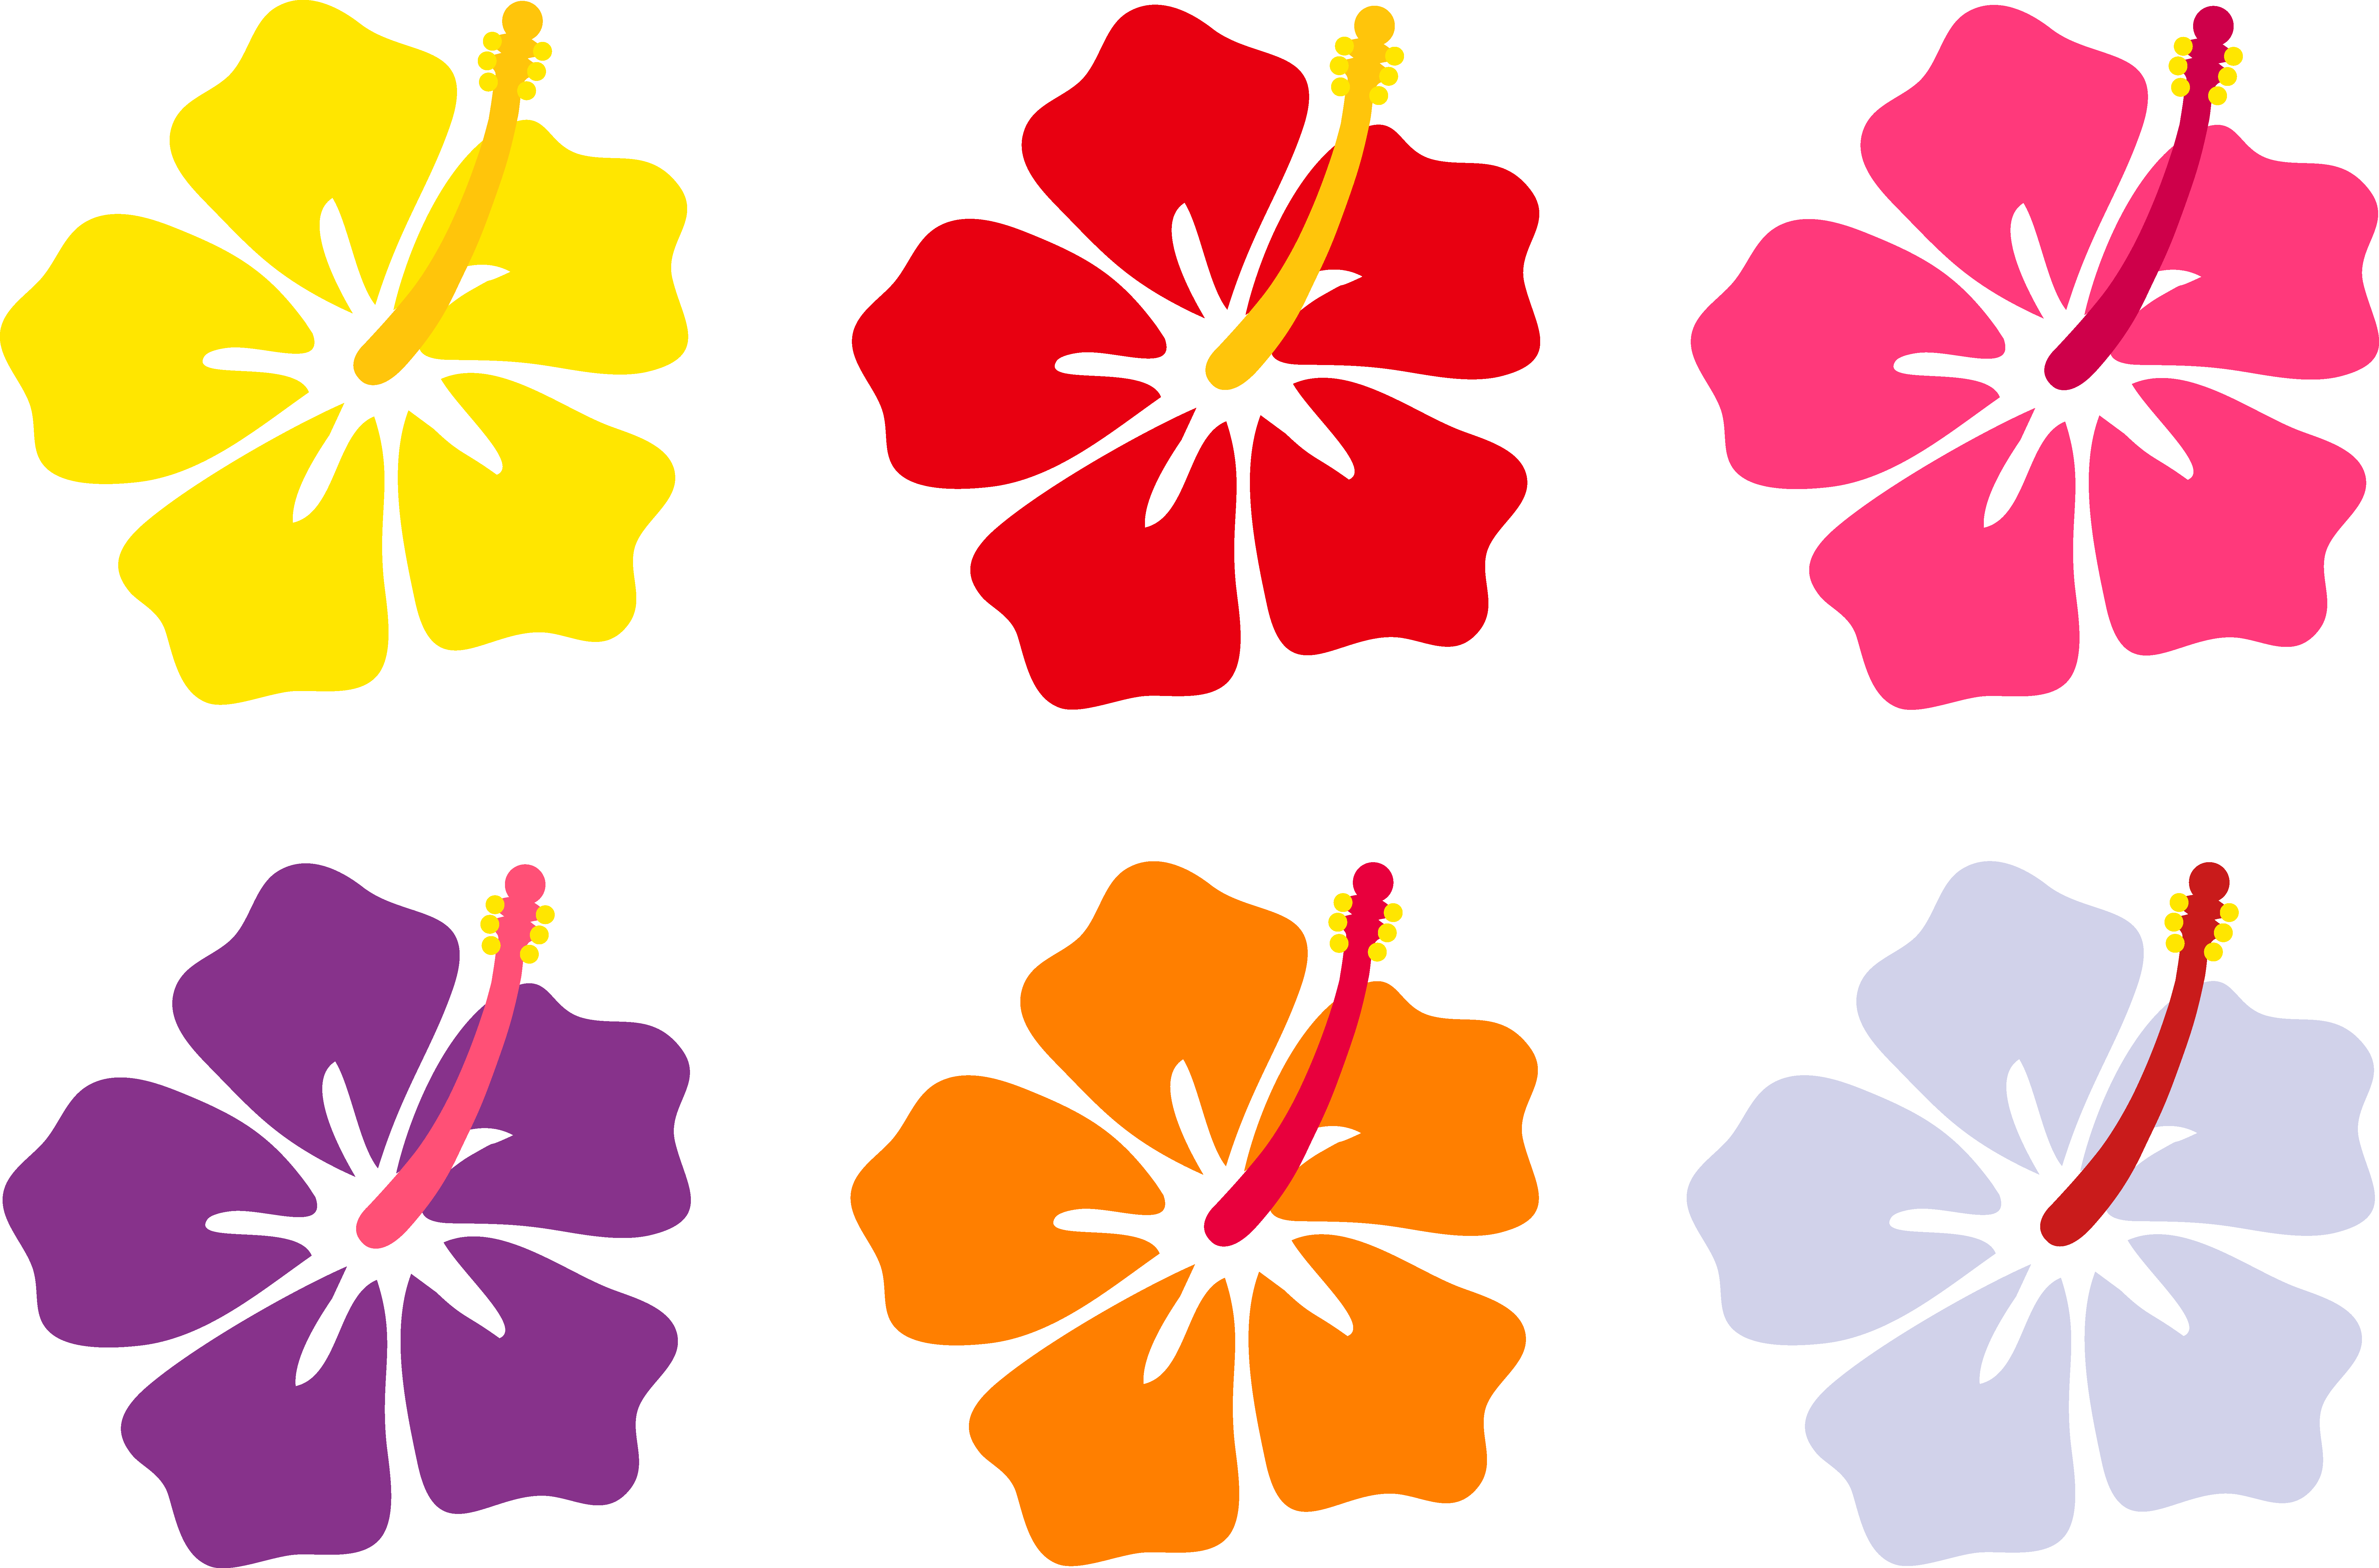 Flower colors clipart. Hibiscus flowers in six